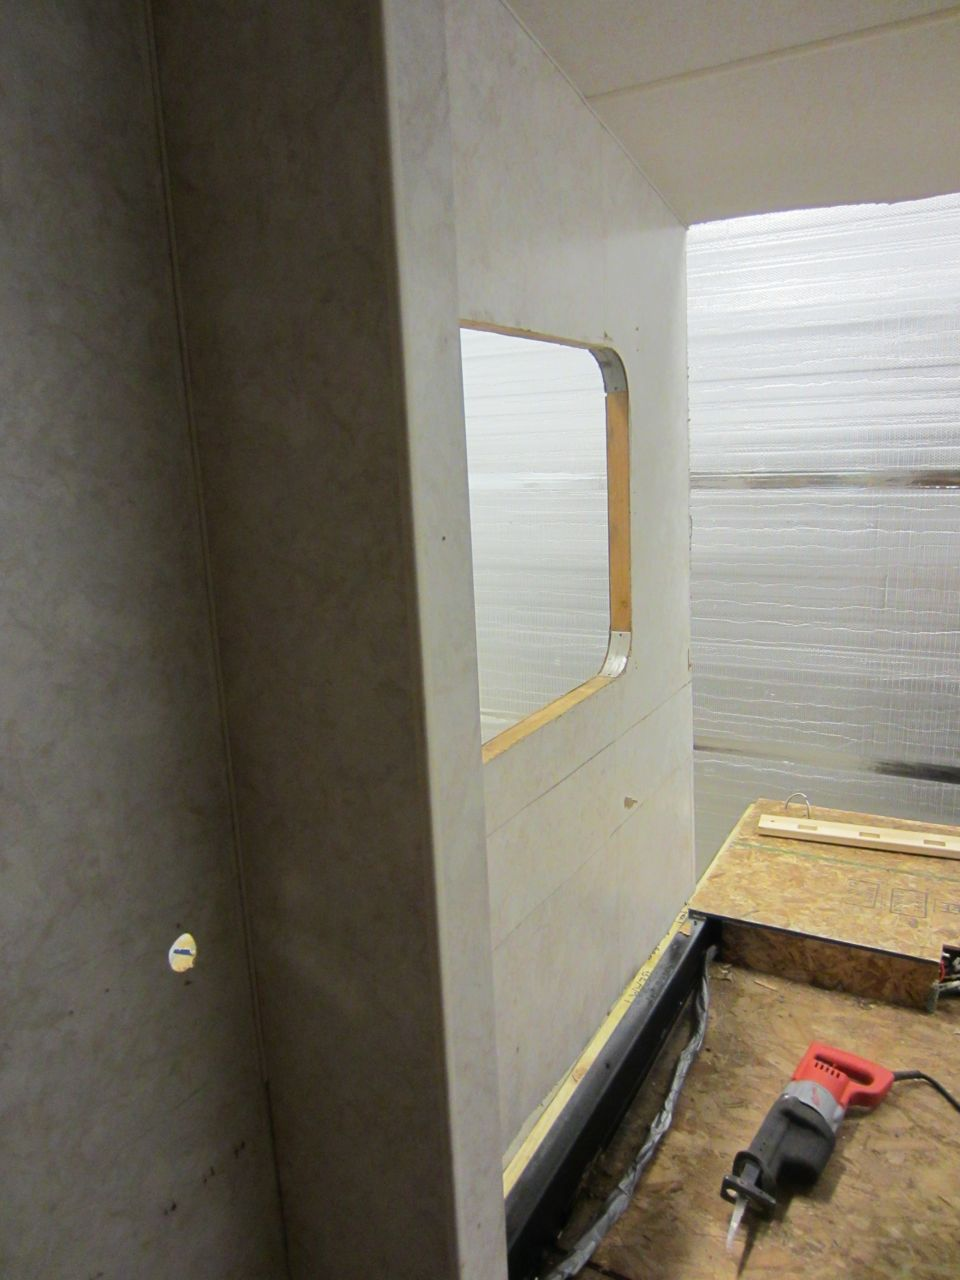 This smaller divider walls separated the bedroom from the bathroom sink and was located on the driver side of the rig.